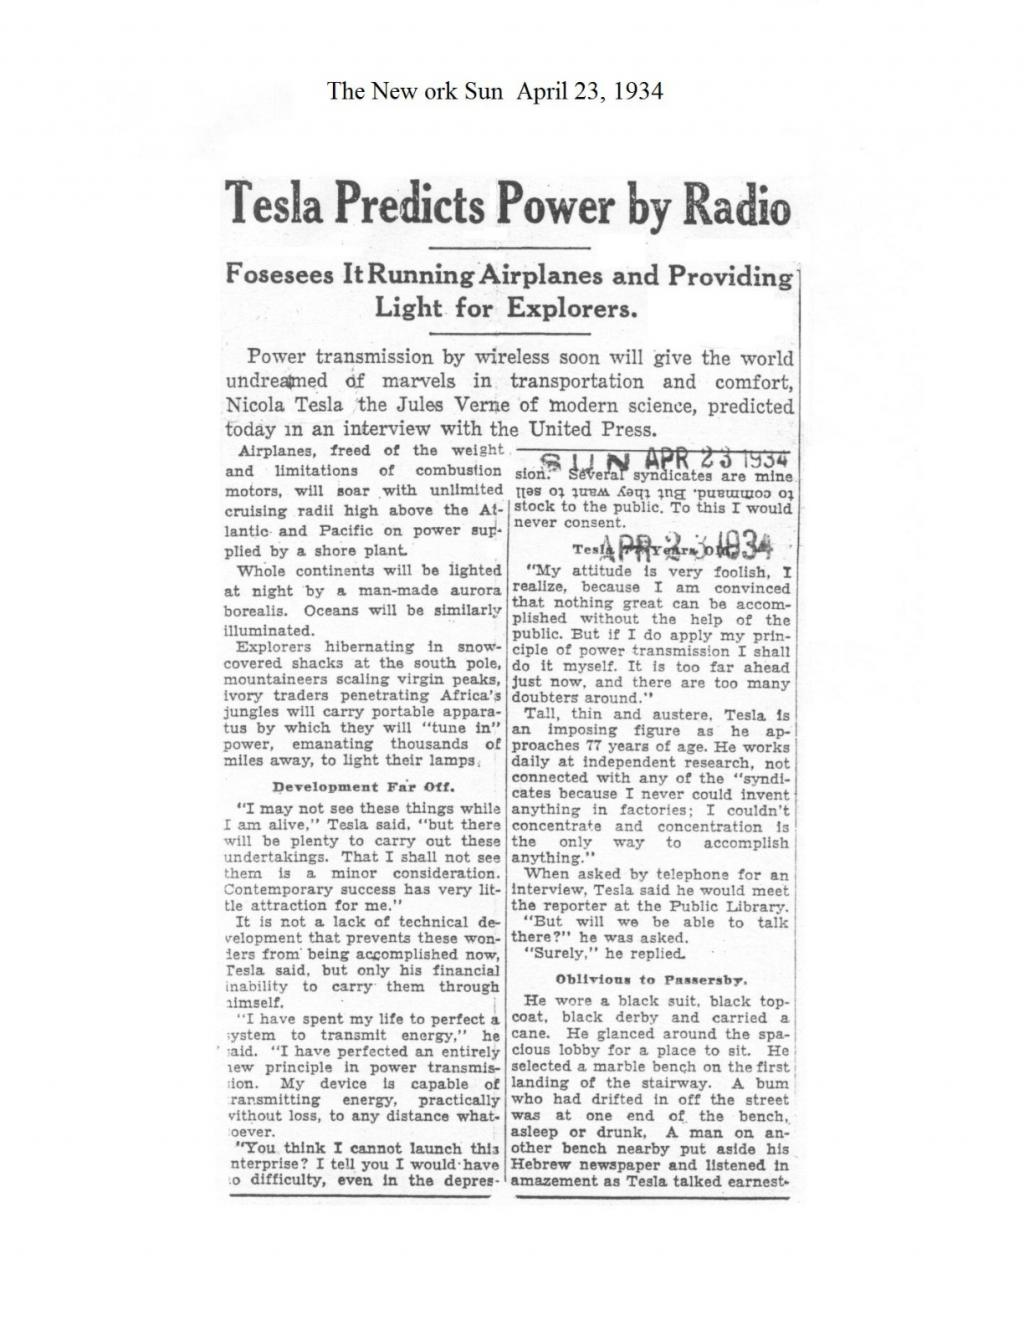 Preview of Tesla Predicts Power by Radio article